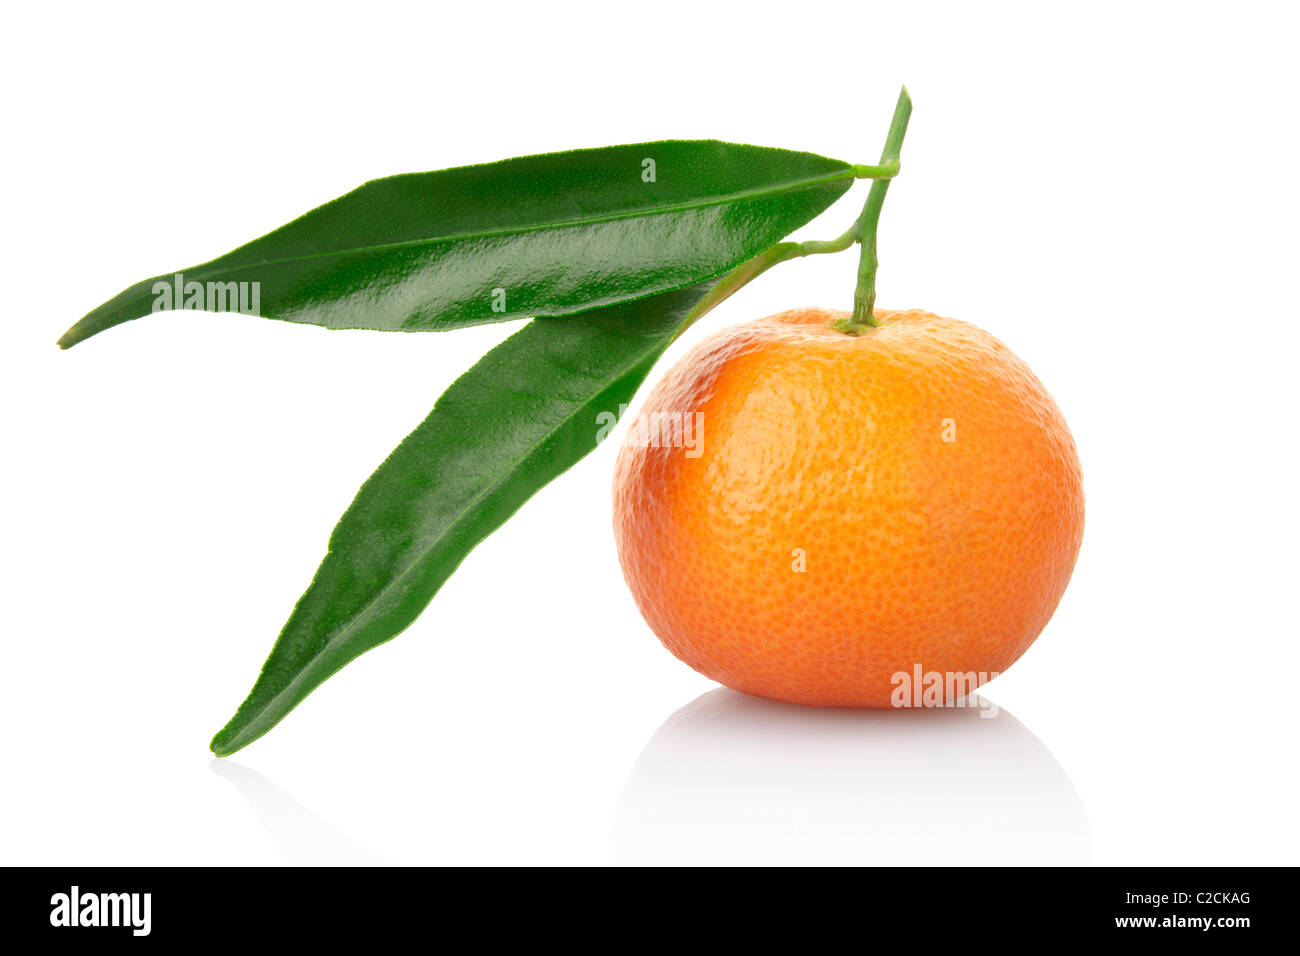 Tangerine with leaves isolated on white - Stock Image